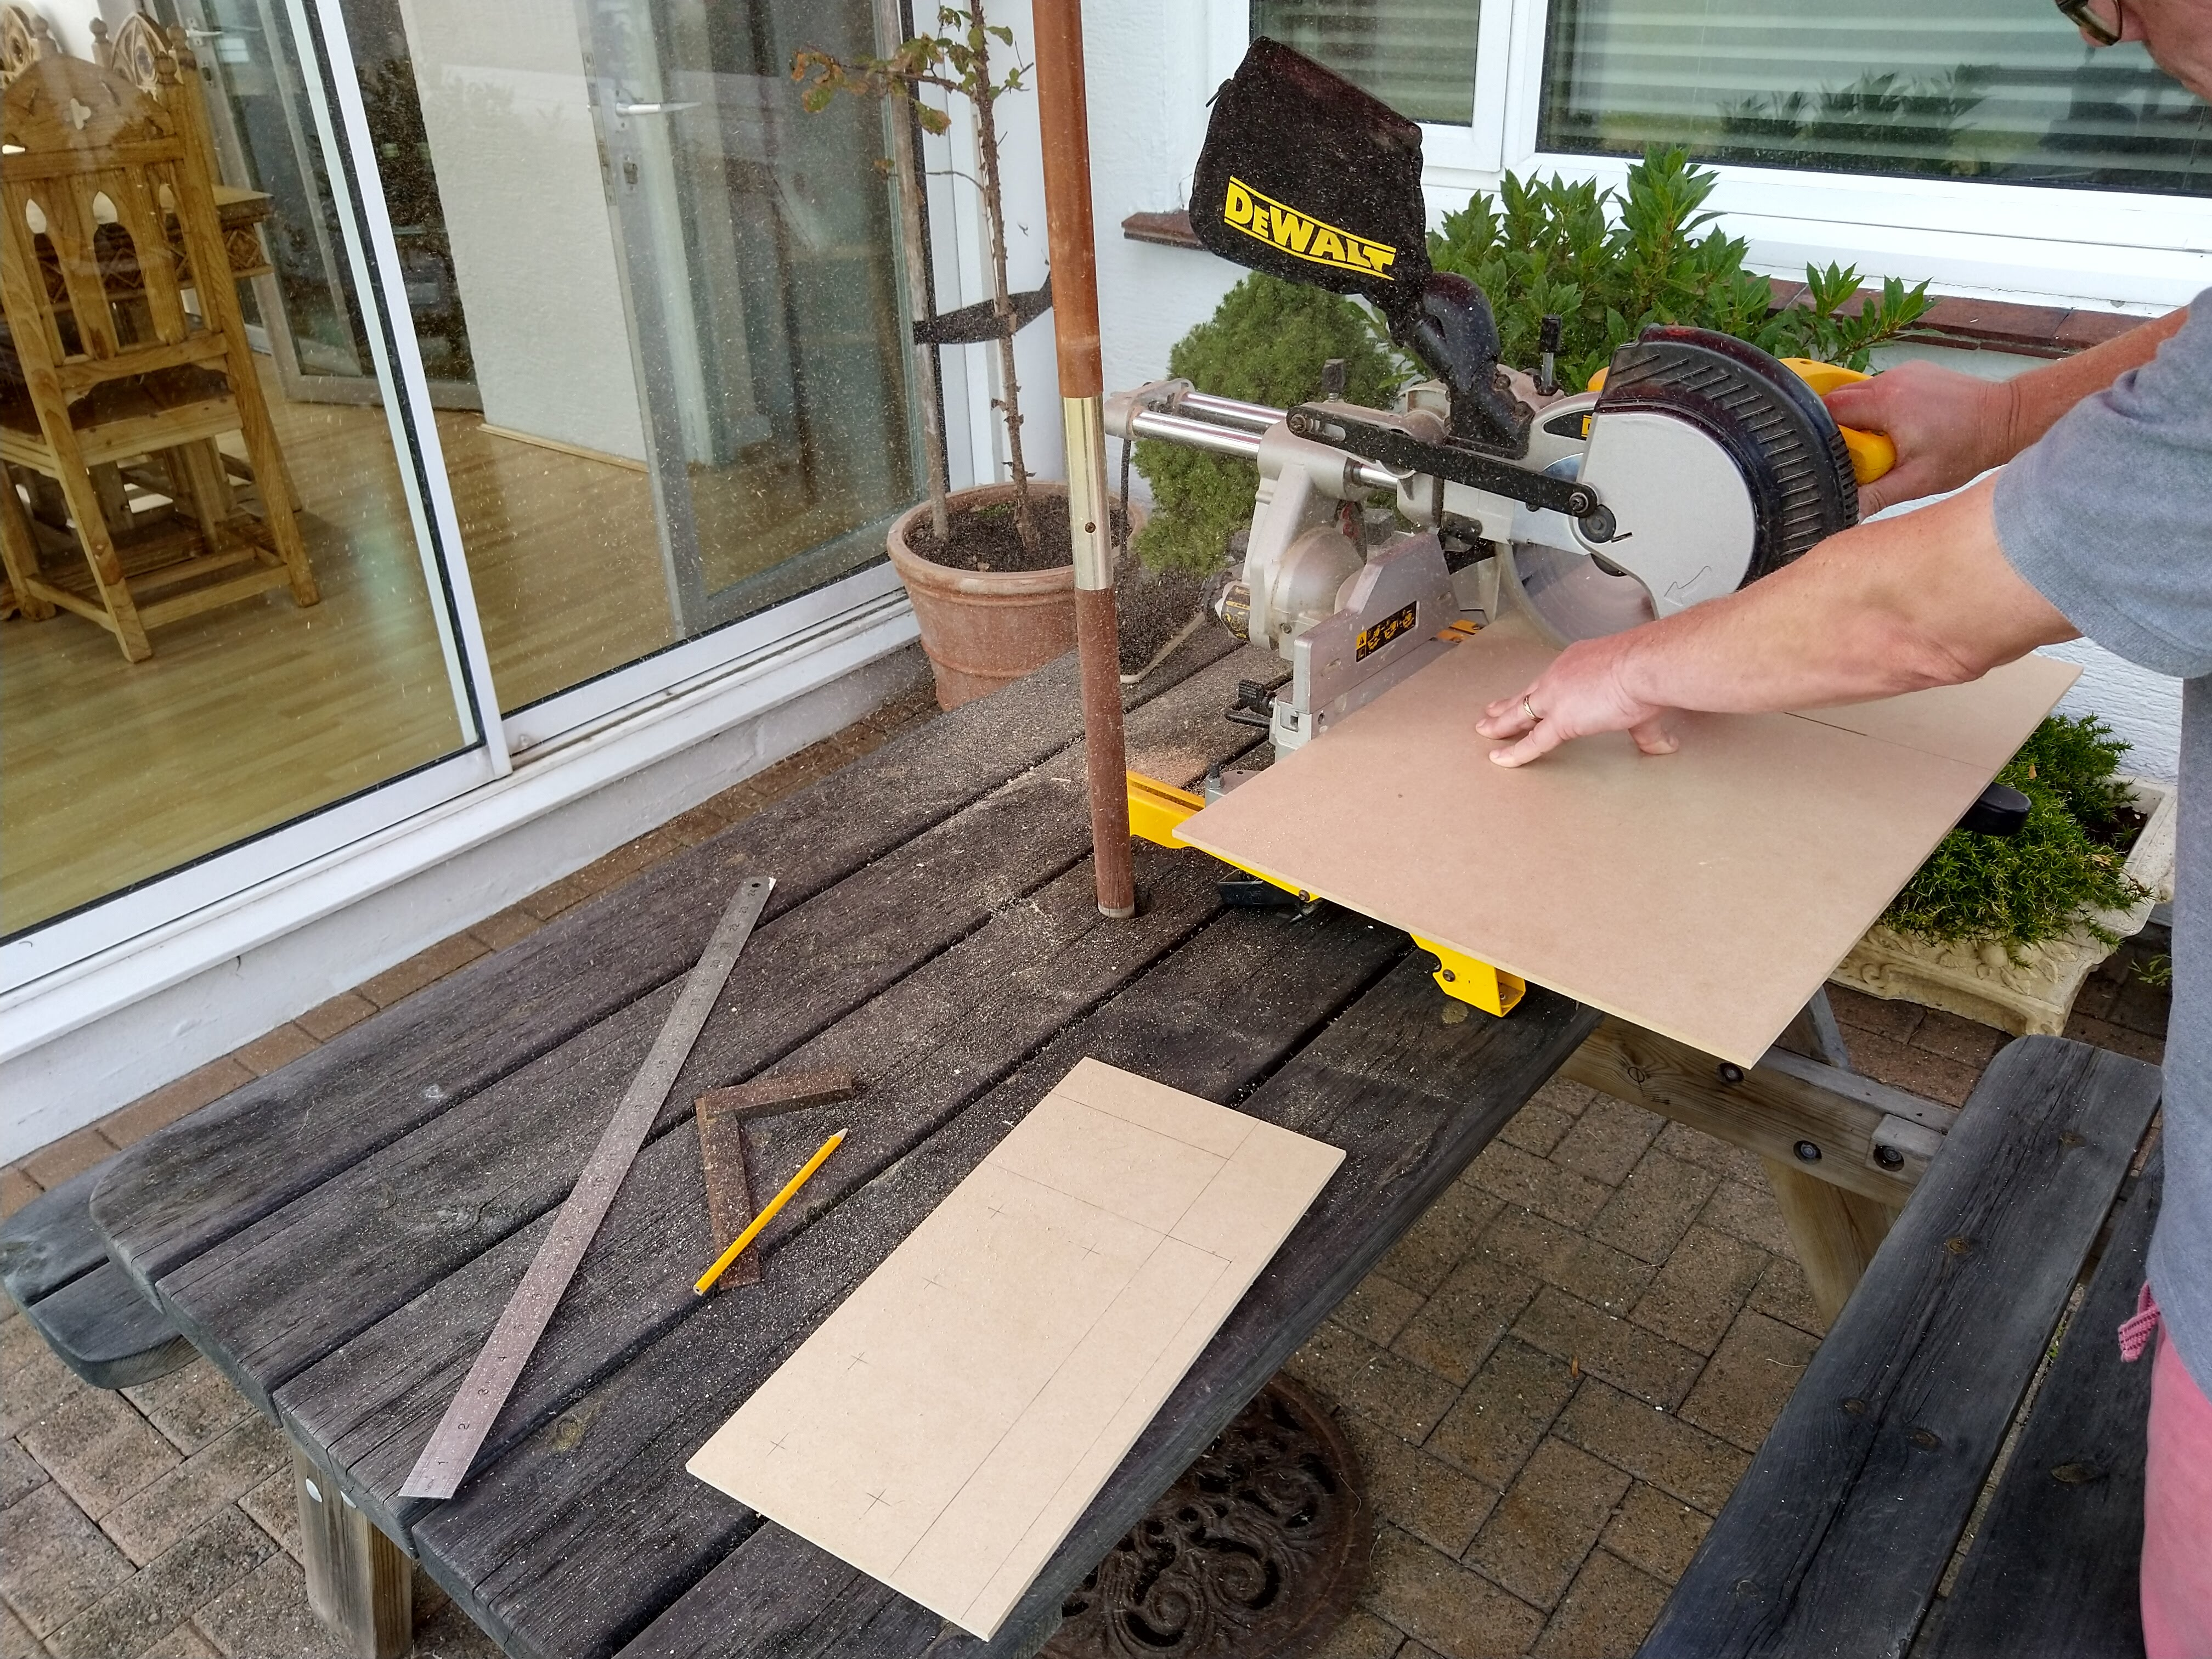 A DEWALT sliding mitre saw on an outside table being used to cut a sheet of MDF. There is a piece of MDF in the foreground with various lines drawn on it marking the cuts to make, along with a metal ruler, pencil and engineers square